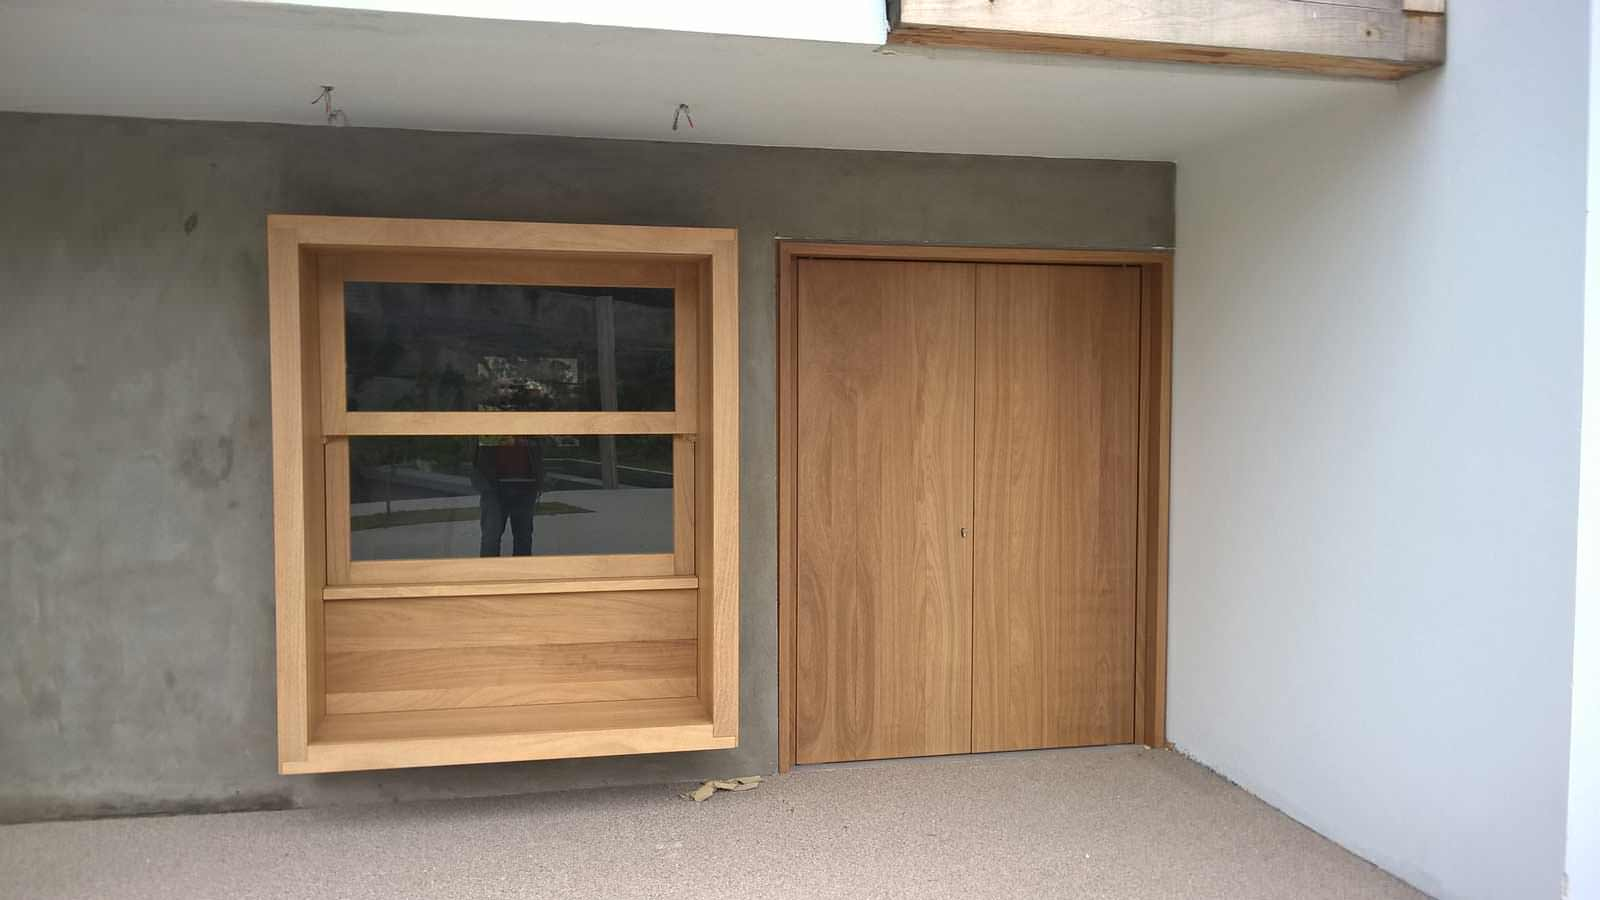 Entrance and retractable window made of solid wood IROCO